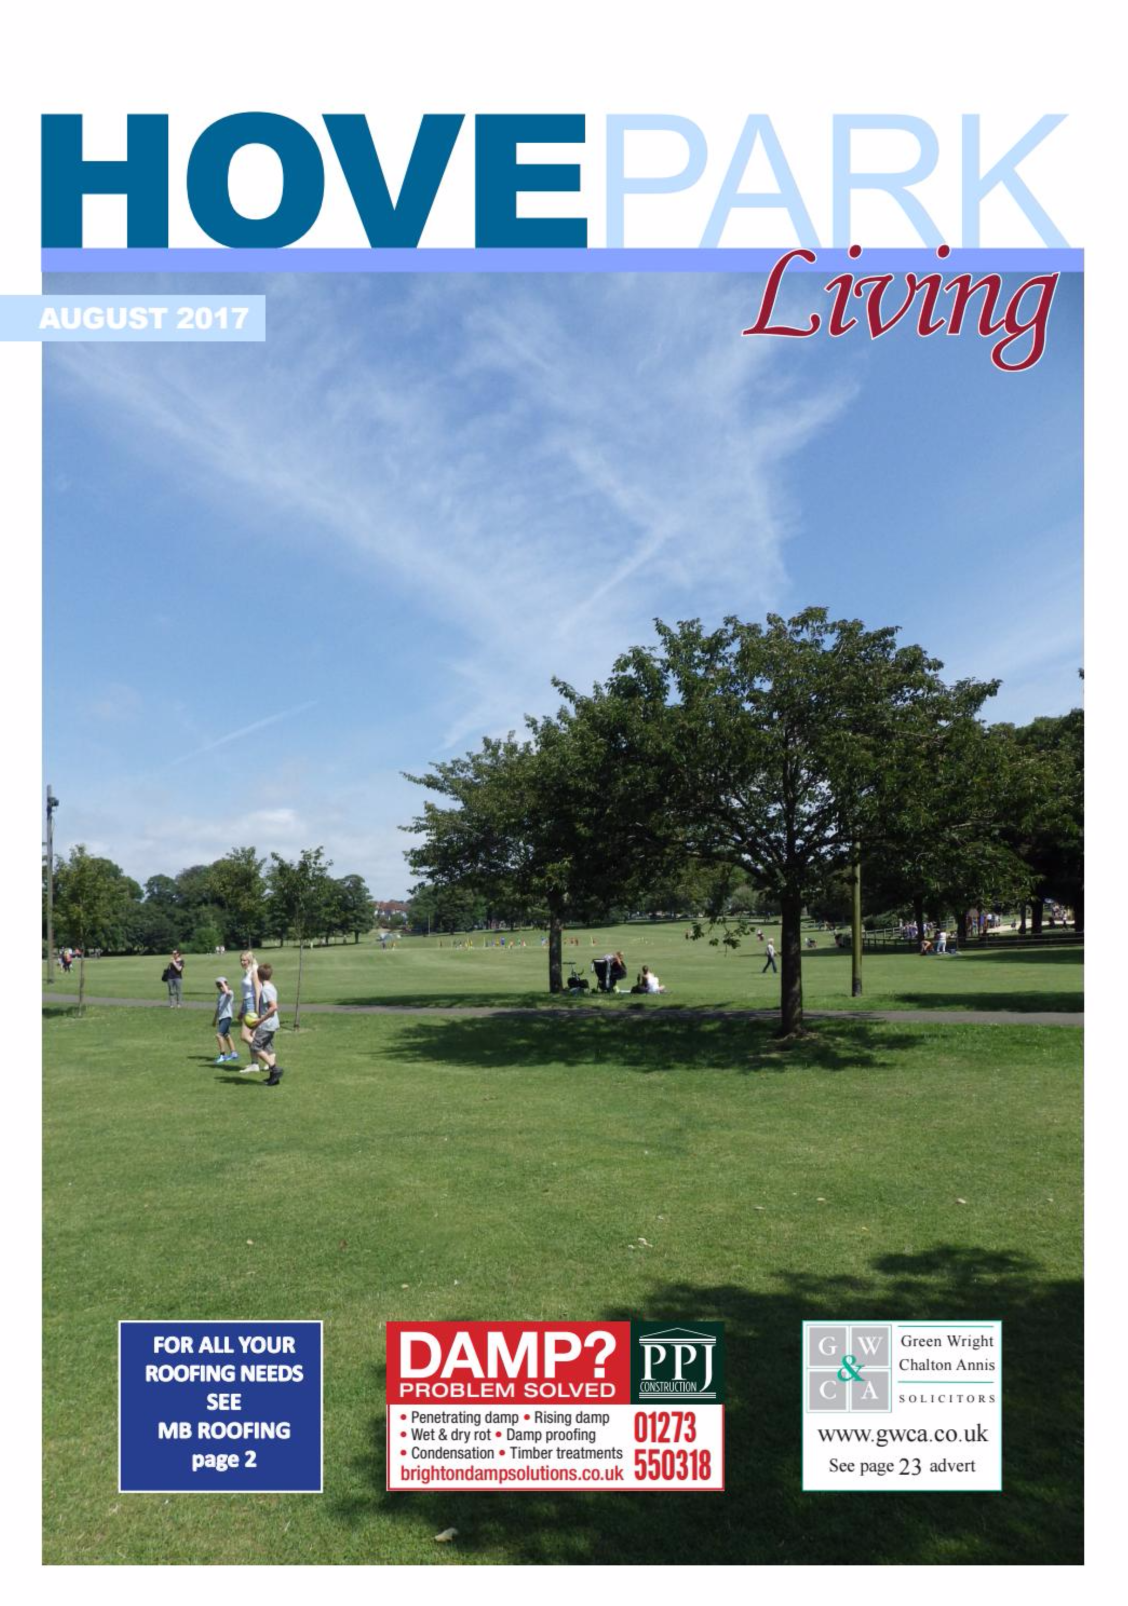 We've been featured in Hove Park Living – Brighton Big Screen Article